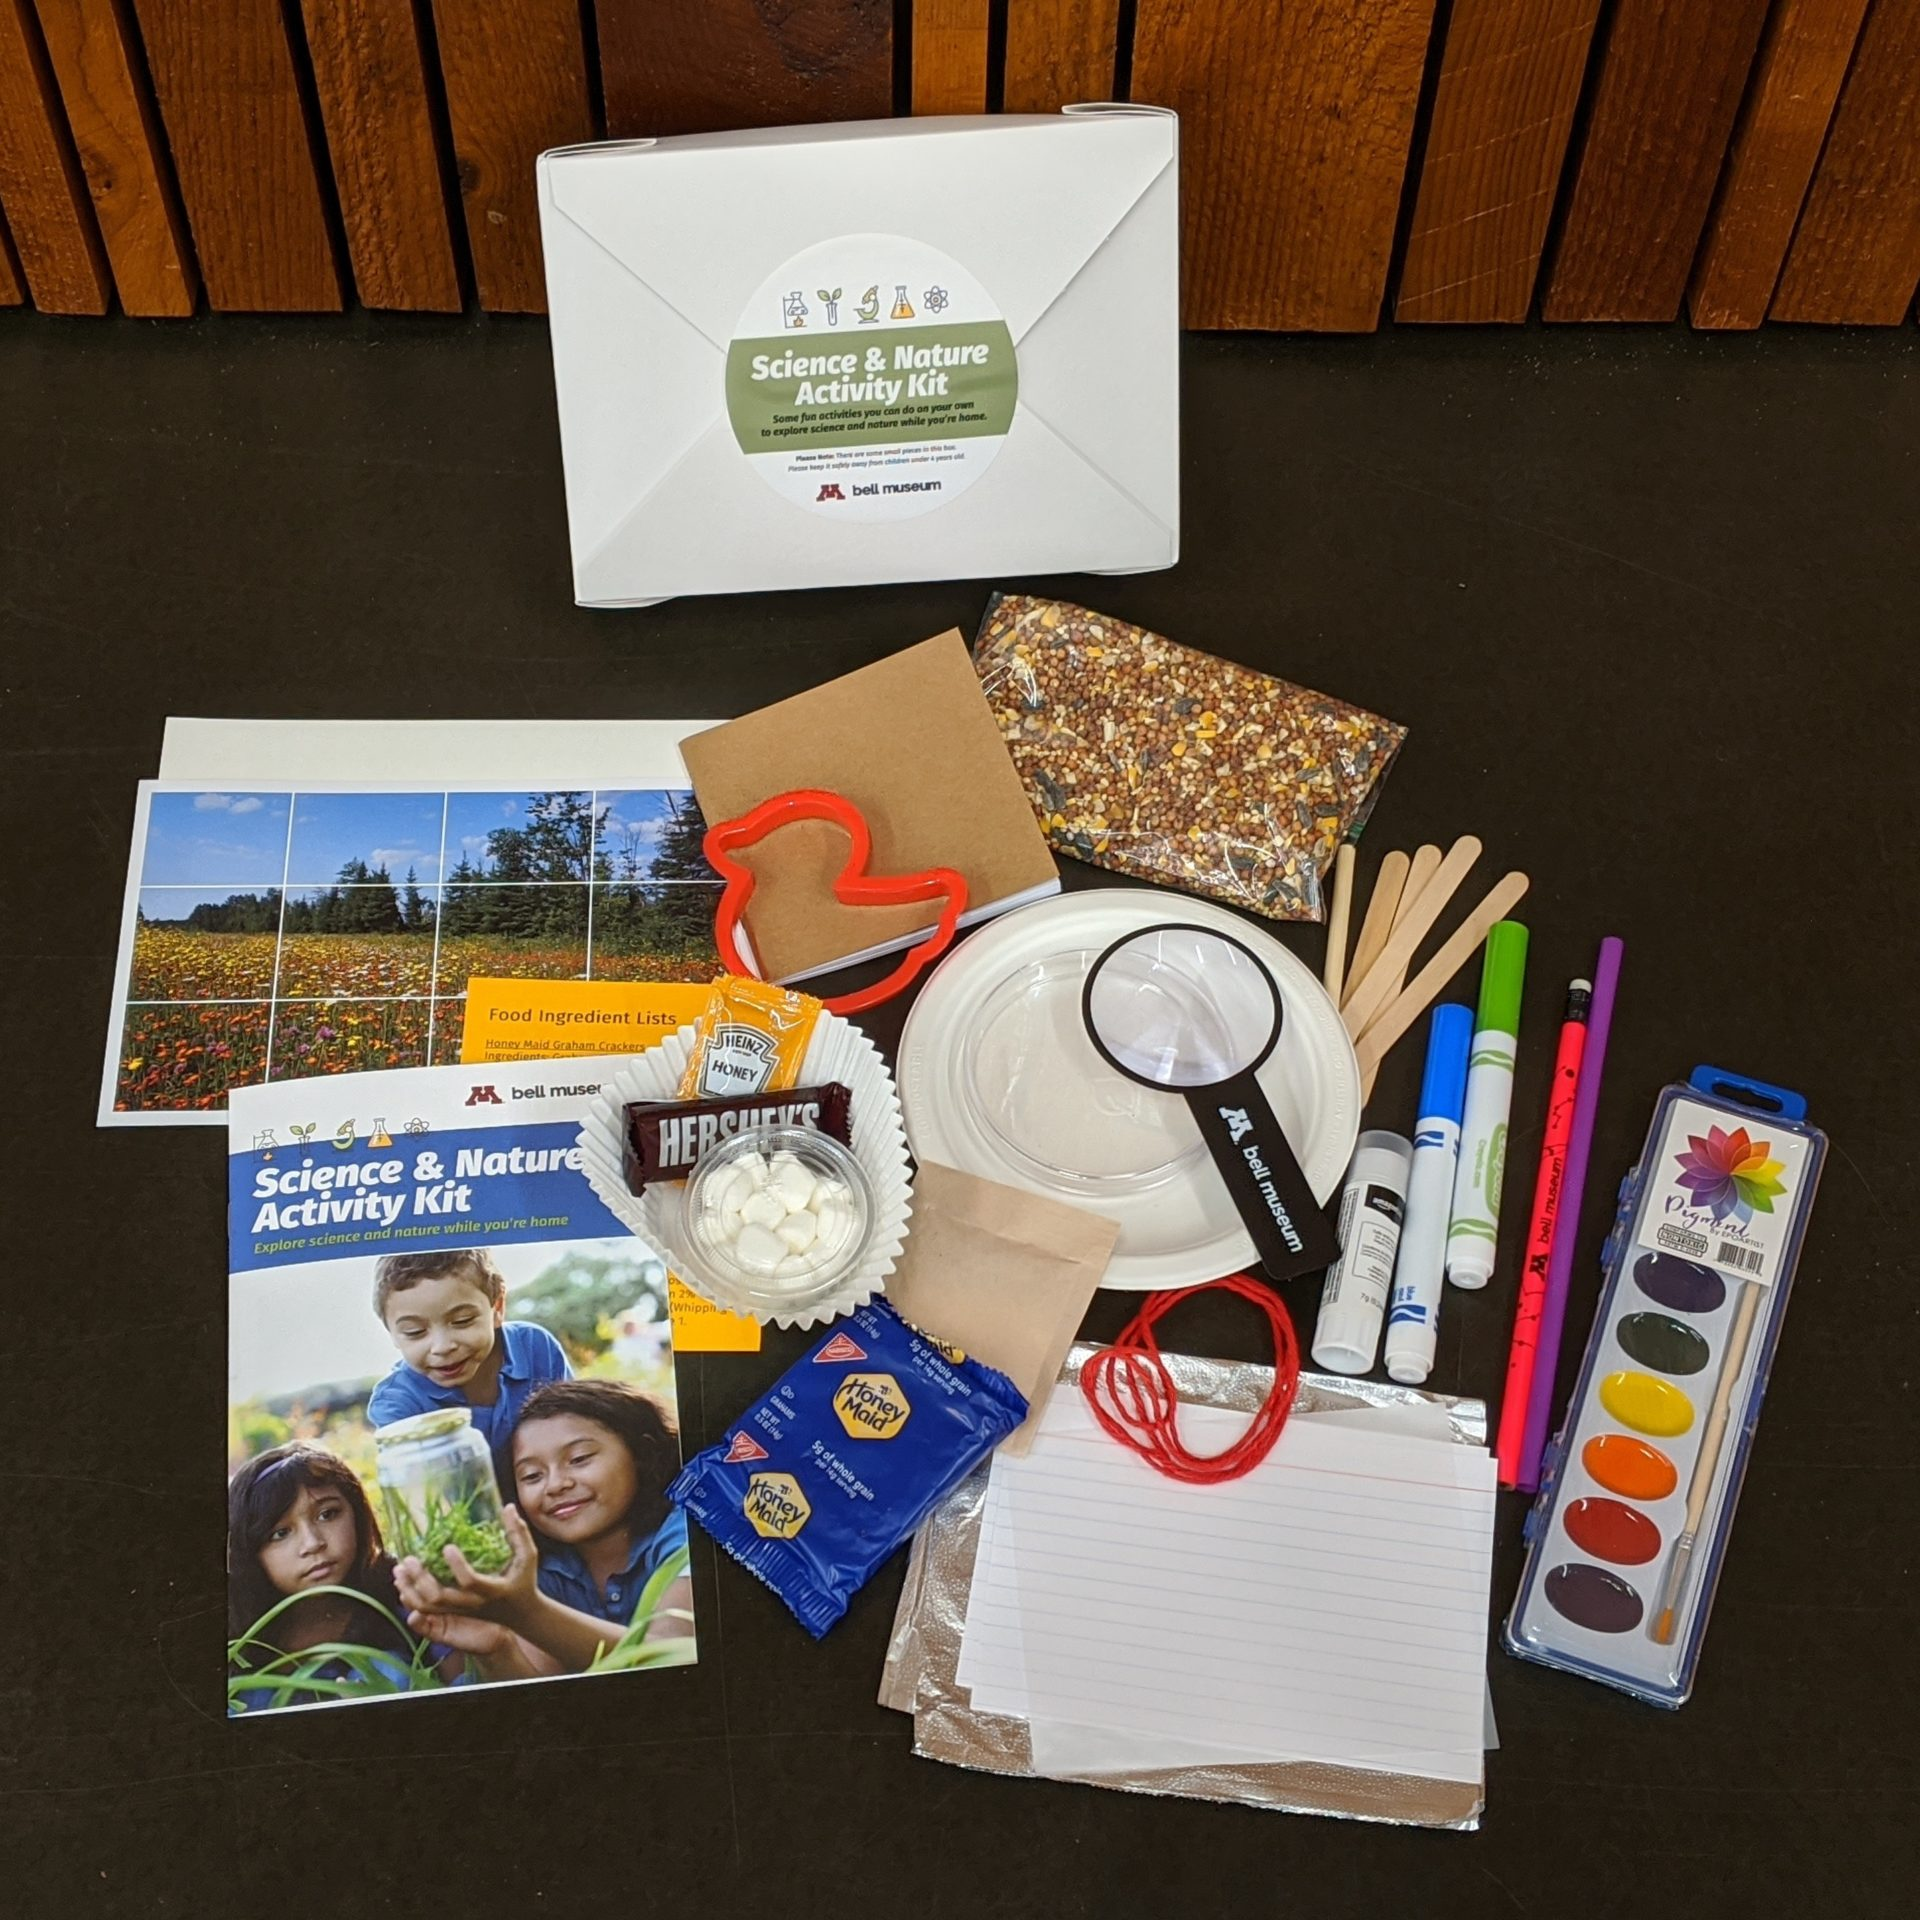 Activity kit full of science and crafting materials